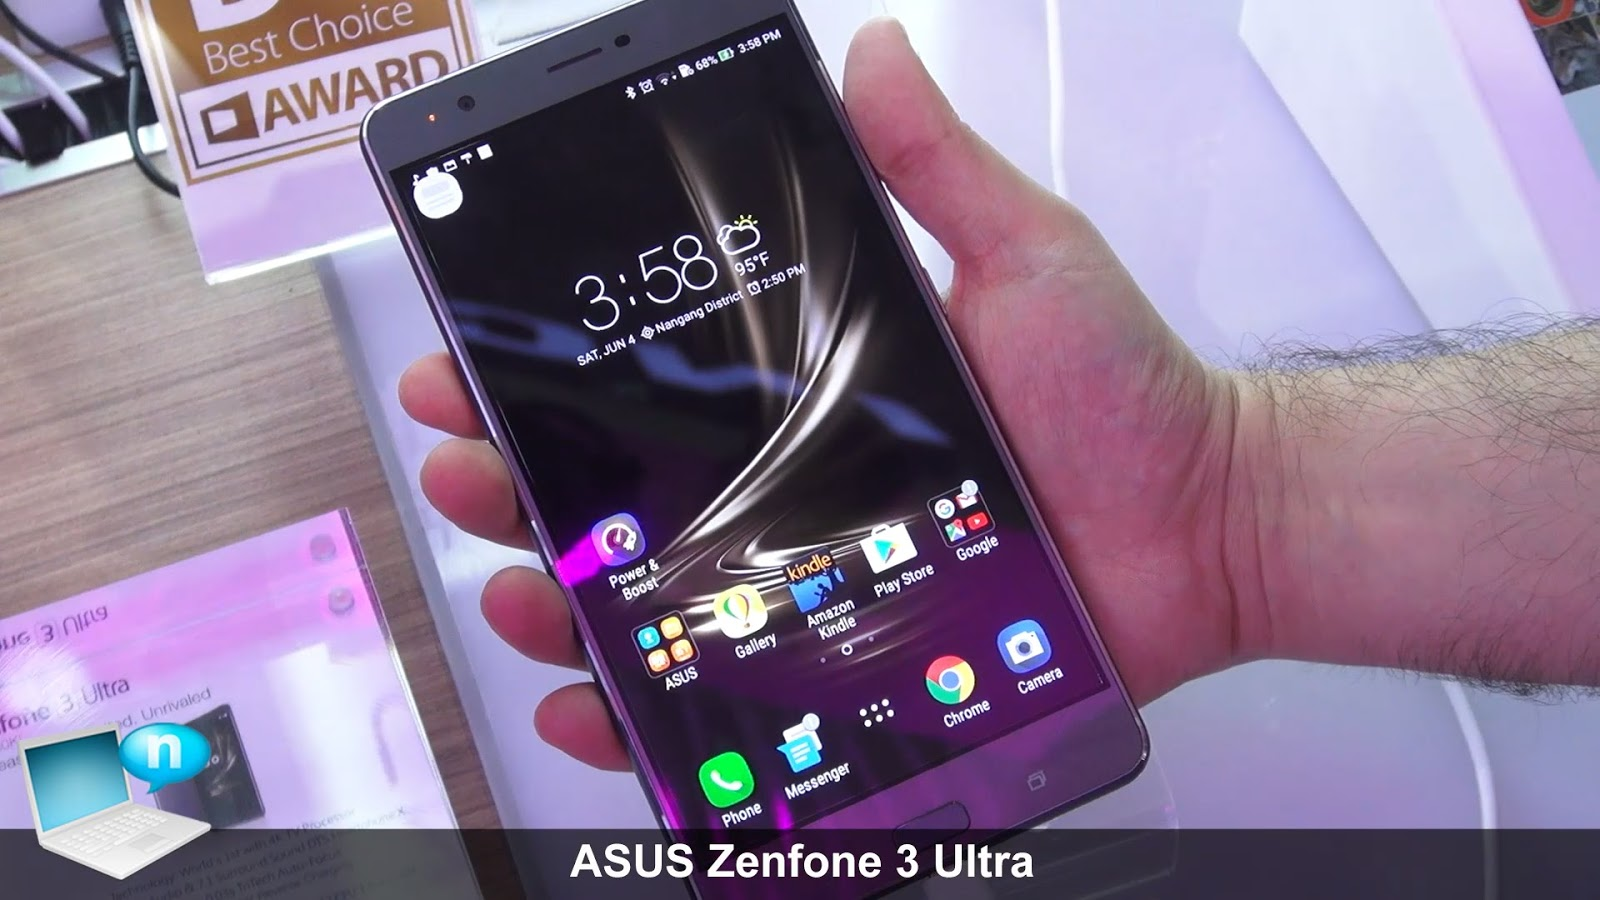 Gadgetcongress Asus Zenfone C Ram 1gb The 3 Deluxe Zs570kl Was Priced At 499 Roughly Rs 33600 And Sports A 57 Inch Full Hd Super Amoled Display Snapdragon 820 Soc